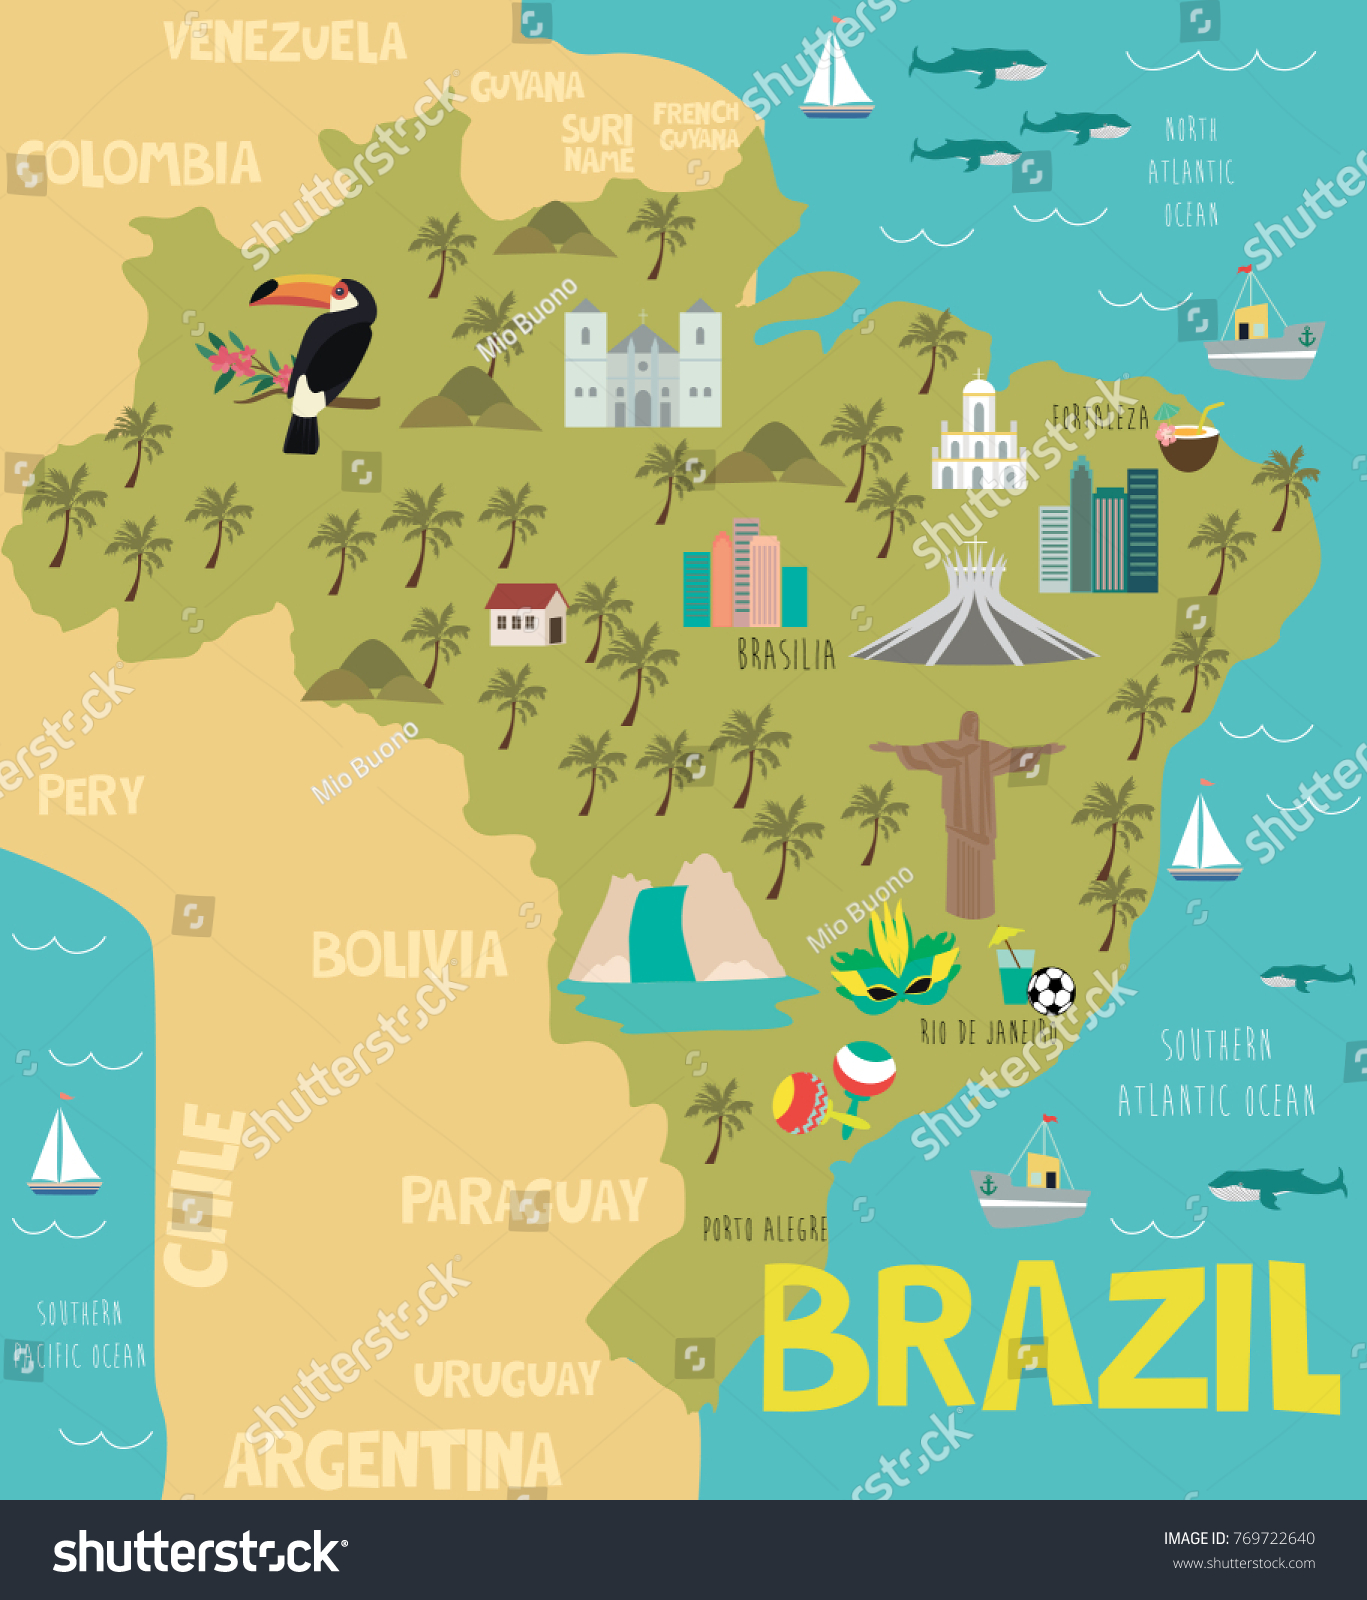 Illustration map brazil nature animals landmarks vector de illustration map of brazil with nature animals and landmarks editable vector illustration gumiabroncs Image collections